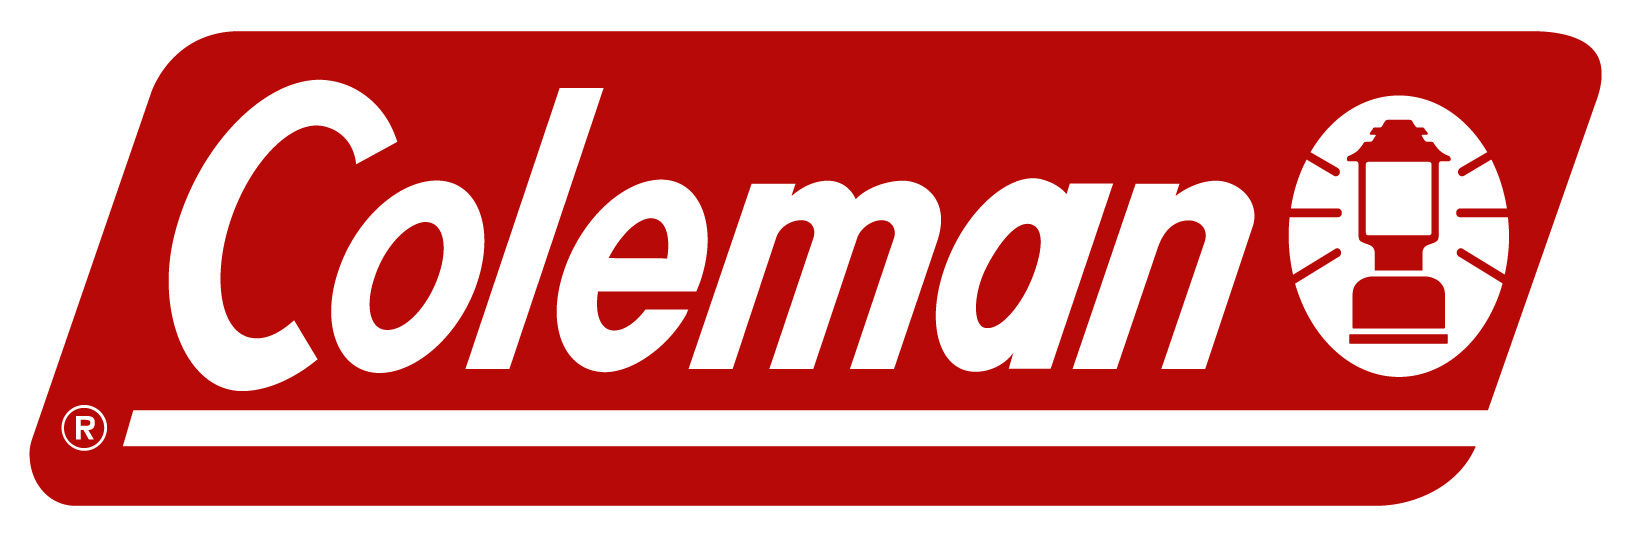 Coleman logo 2021- updated April